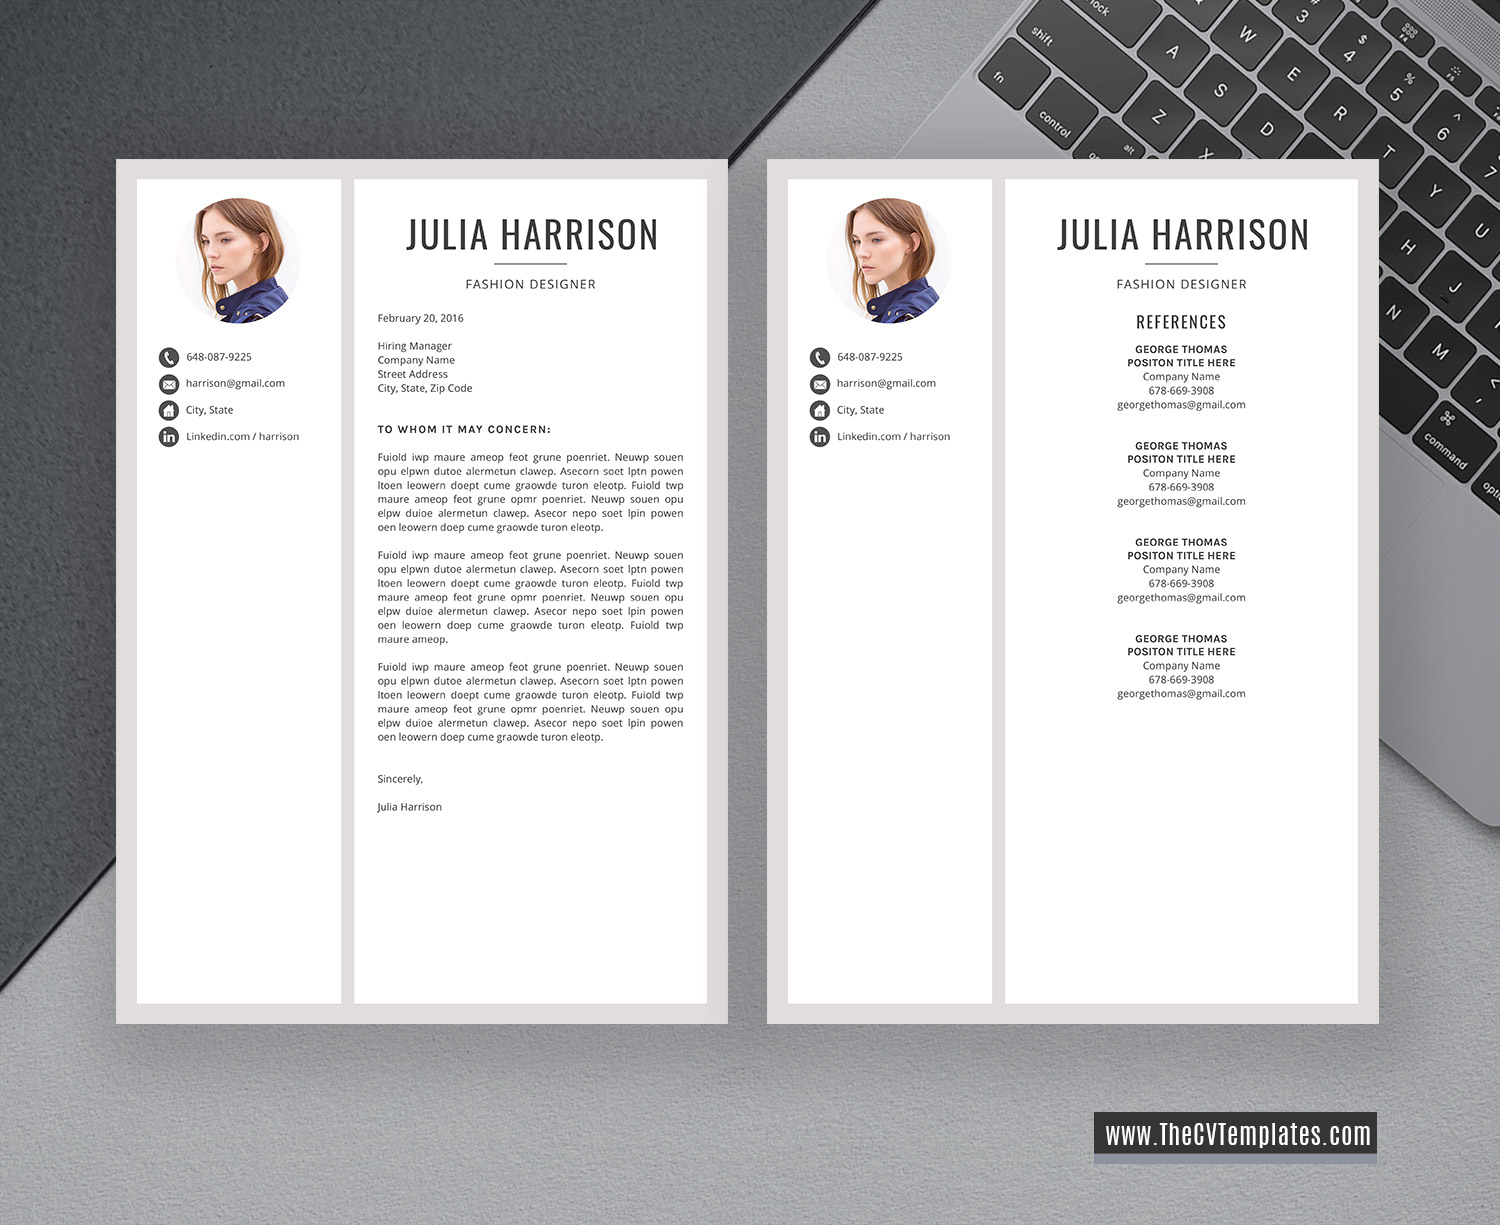 2020 modern cv template for ms word  creative cv layout  cover letter  professional resume